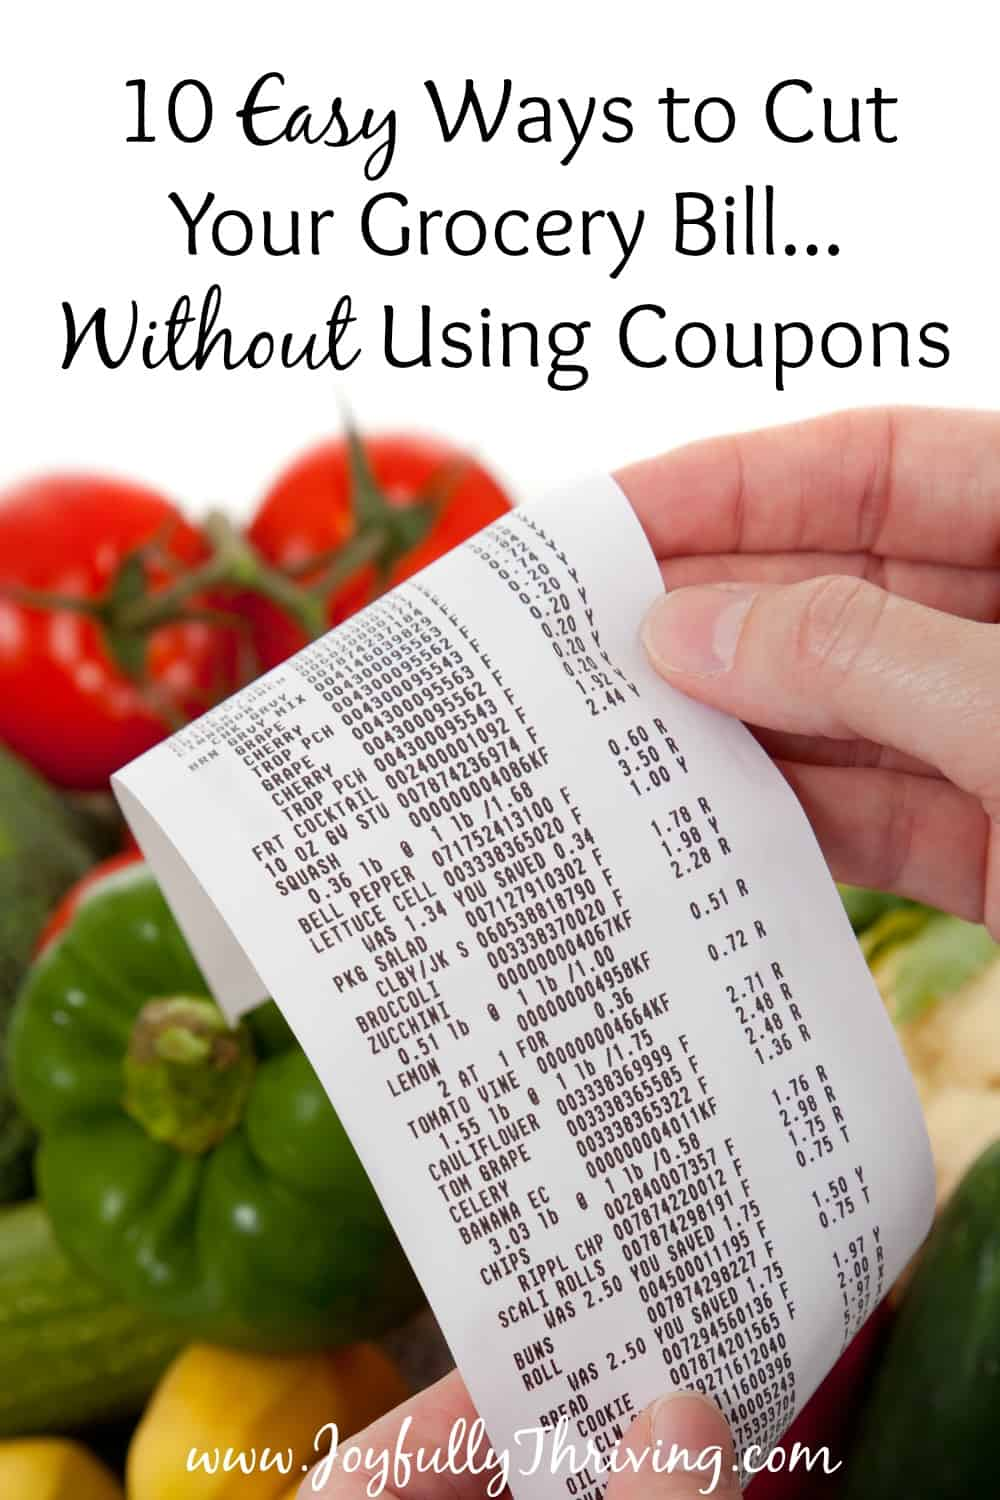 16897a07f5d 10 Easy Ways to Cut Your Grocery Bill Without Using Coupons - It is  completely possible